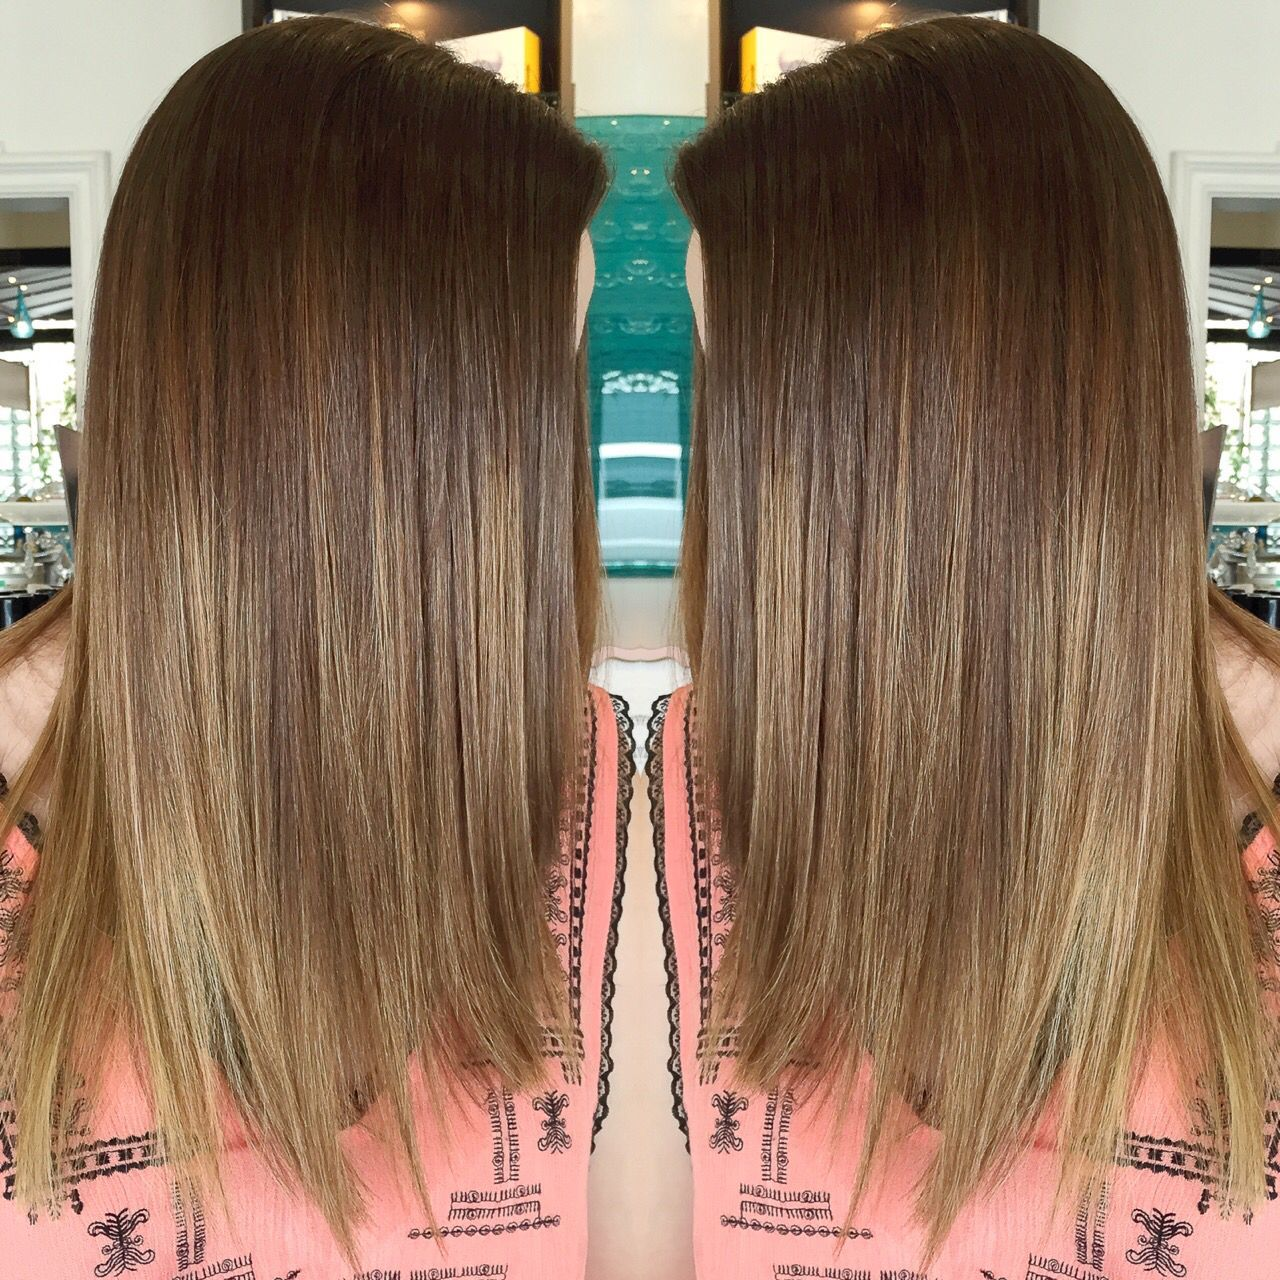 Brazilian straightening and ombre! #brazilianstraightening Brazilian straightening and ombre!